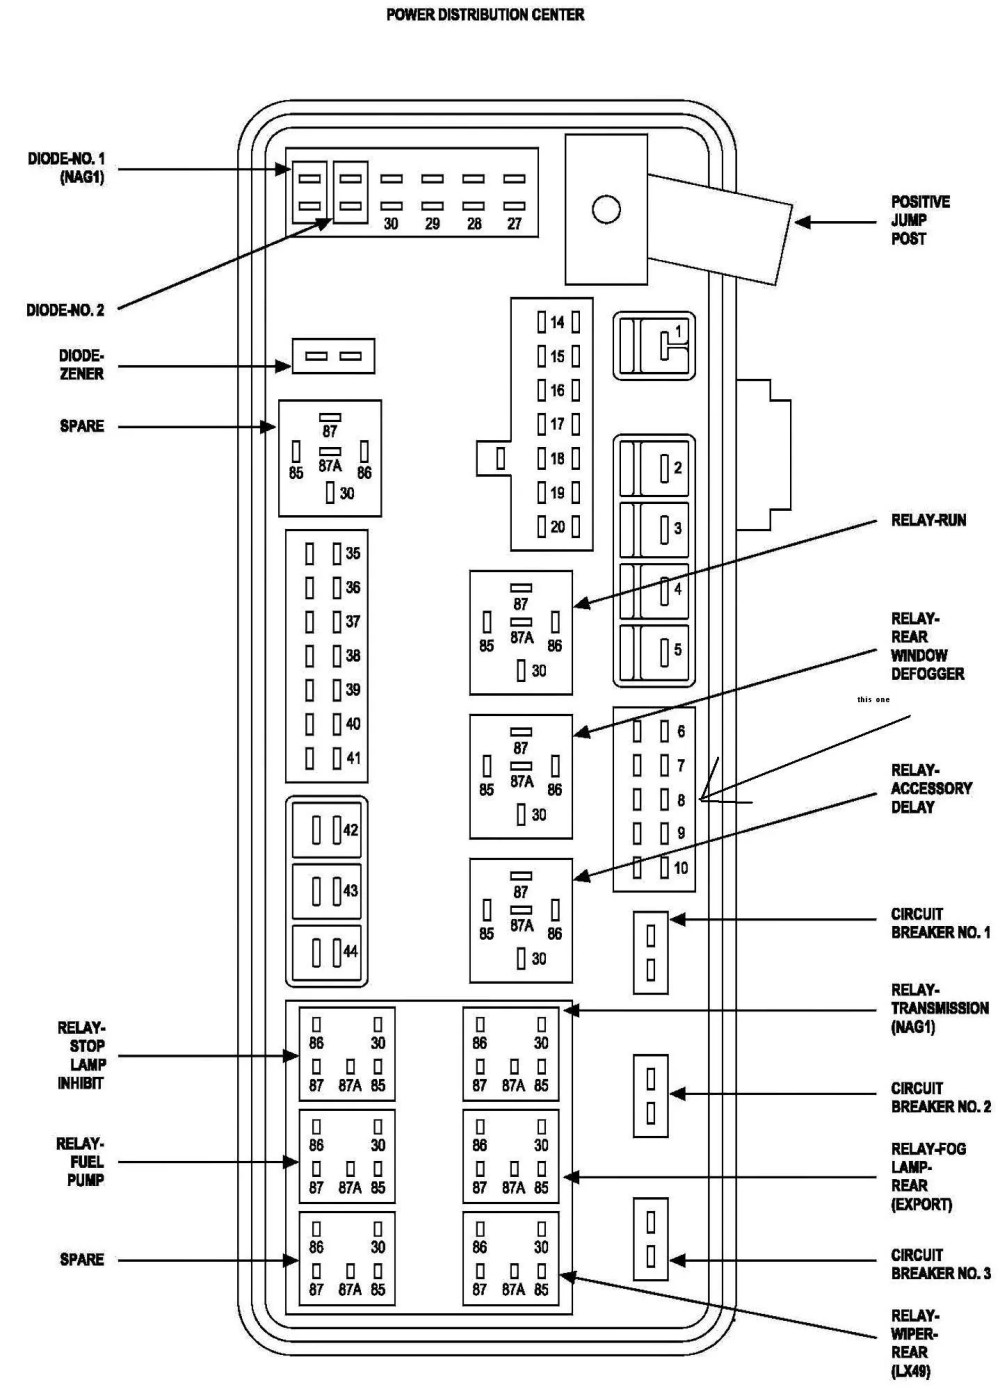 medium resolution of 2010 challenger fuse diagram wiring diagram row wiring schematic for 2010 dodge challenger source 2010 challenger stereo